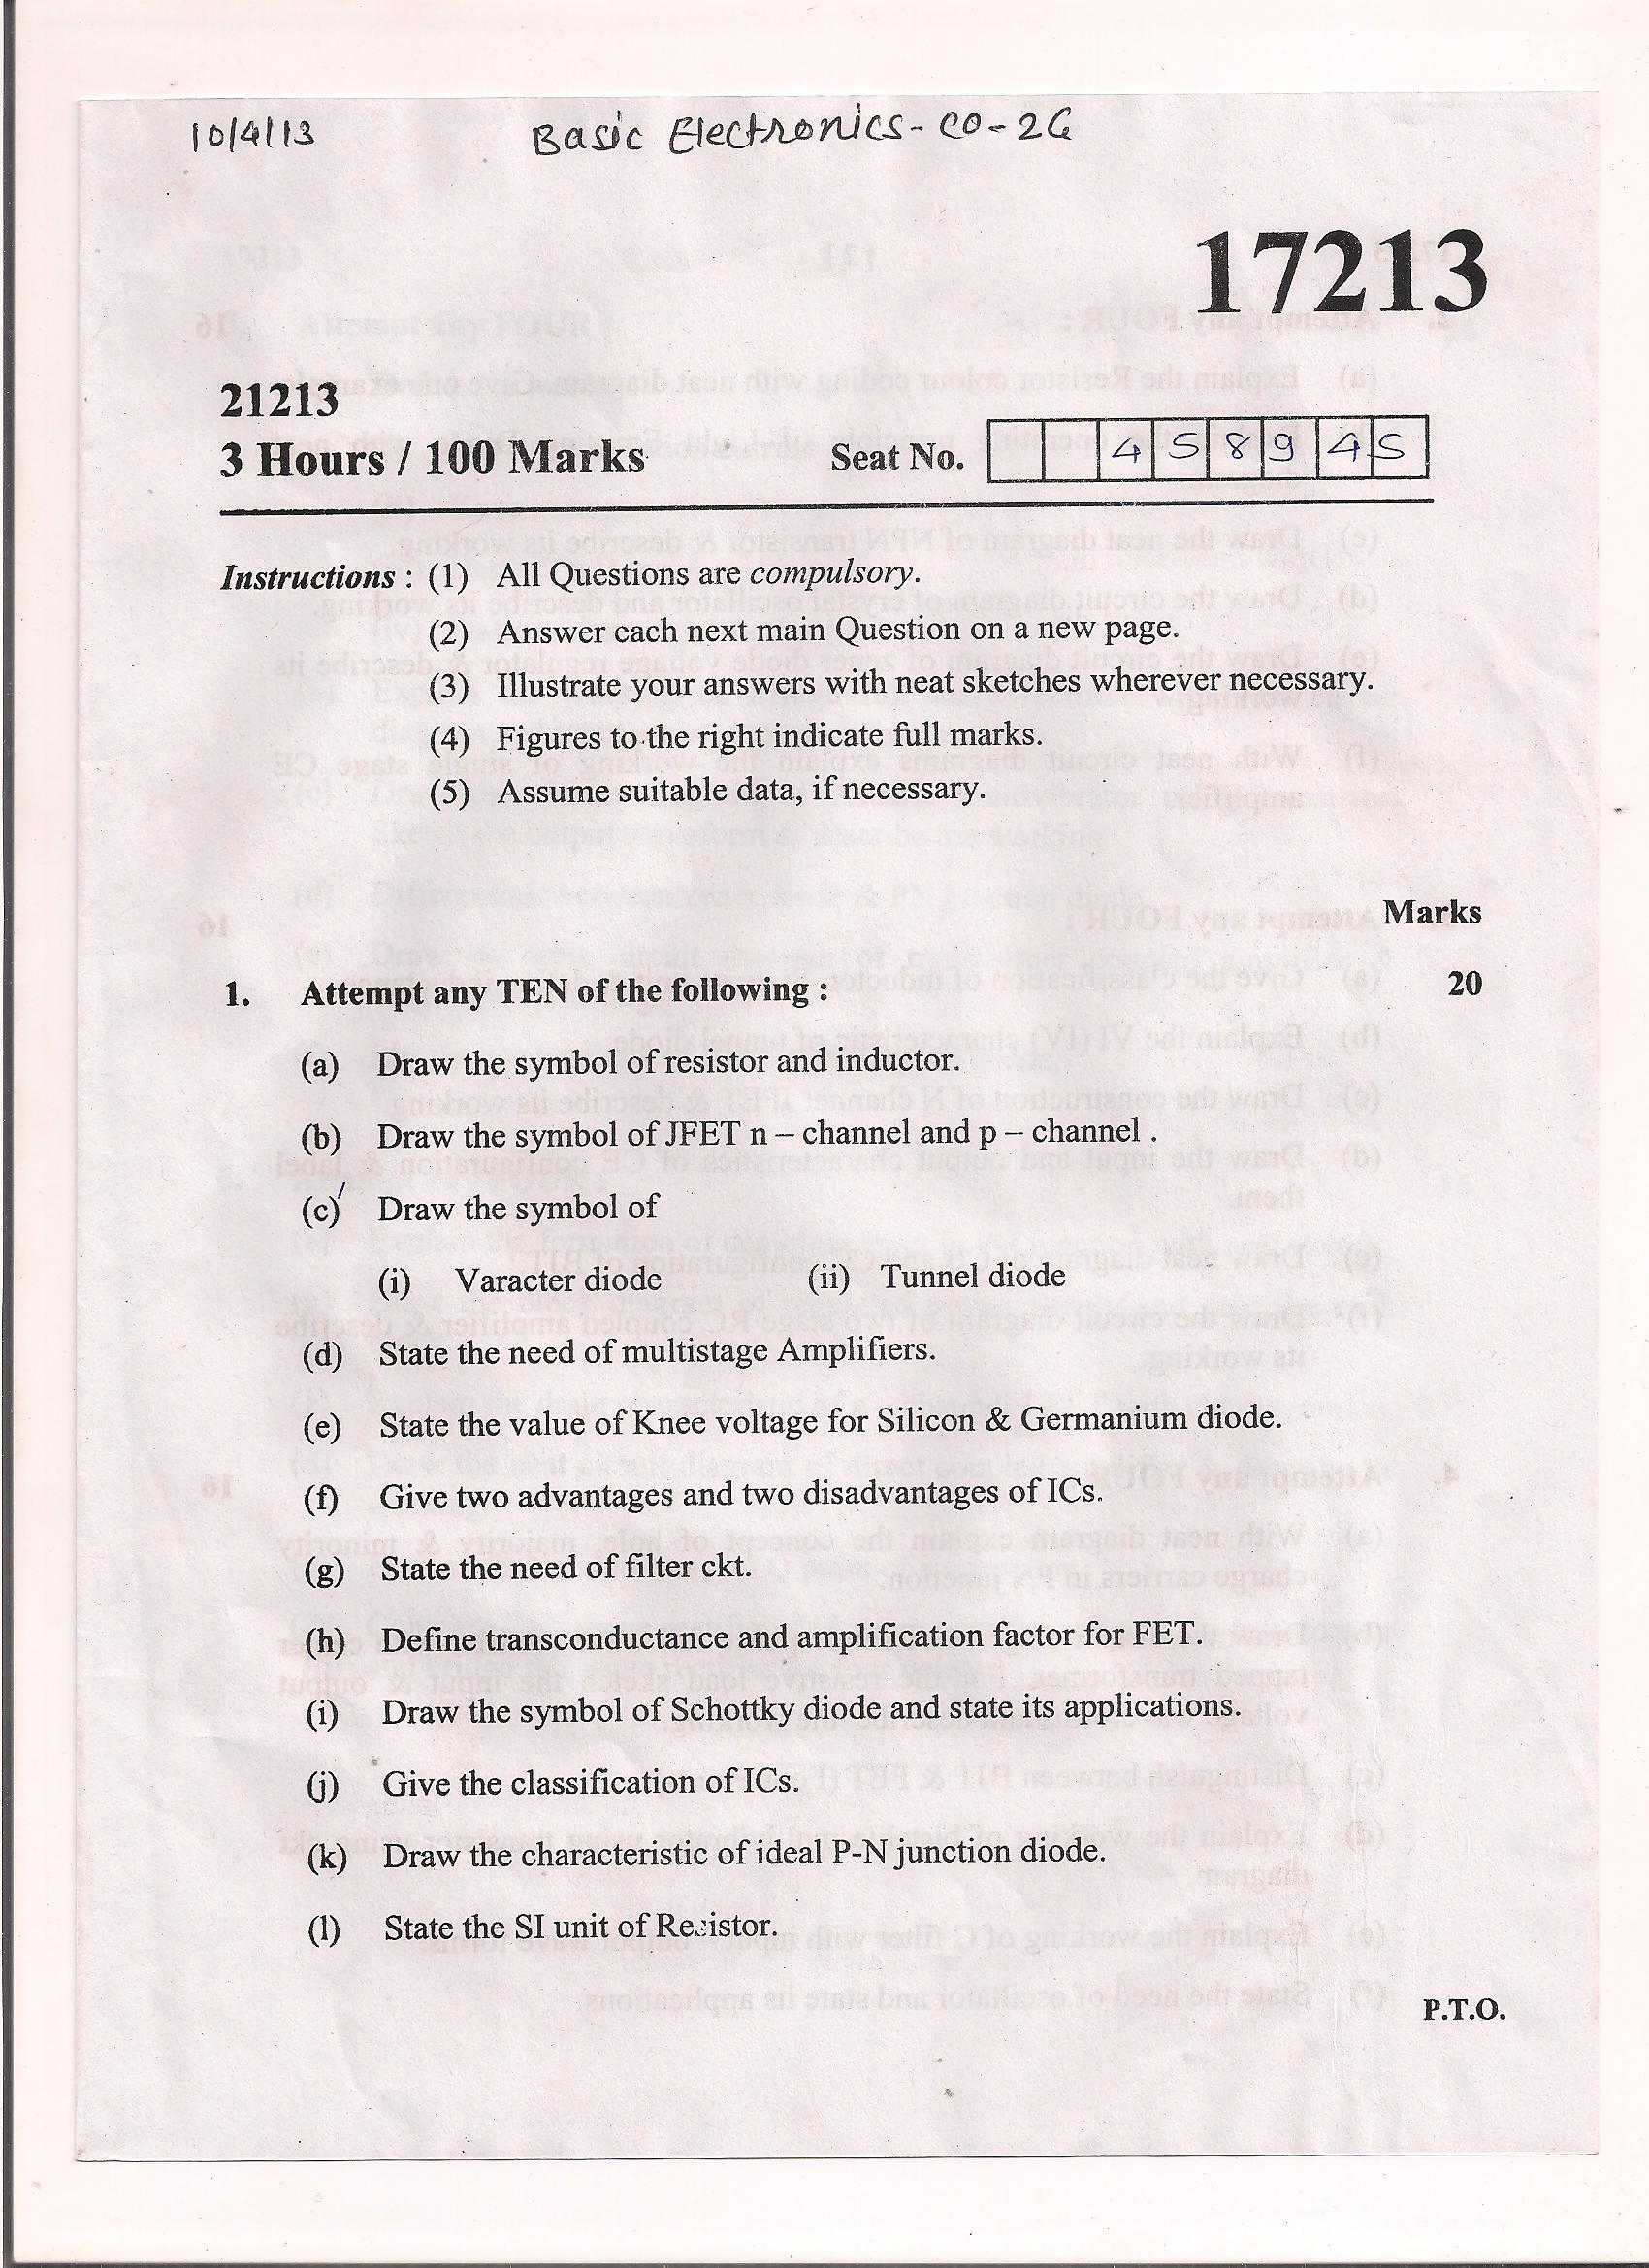 Maharashtra State Board of Technical Education MSBTE Question paper